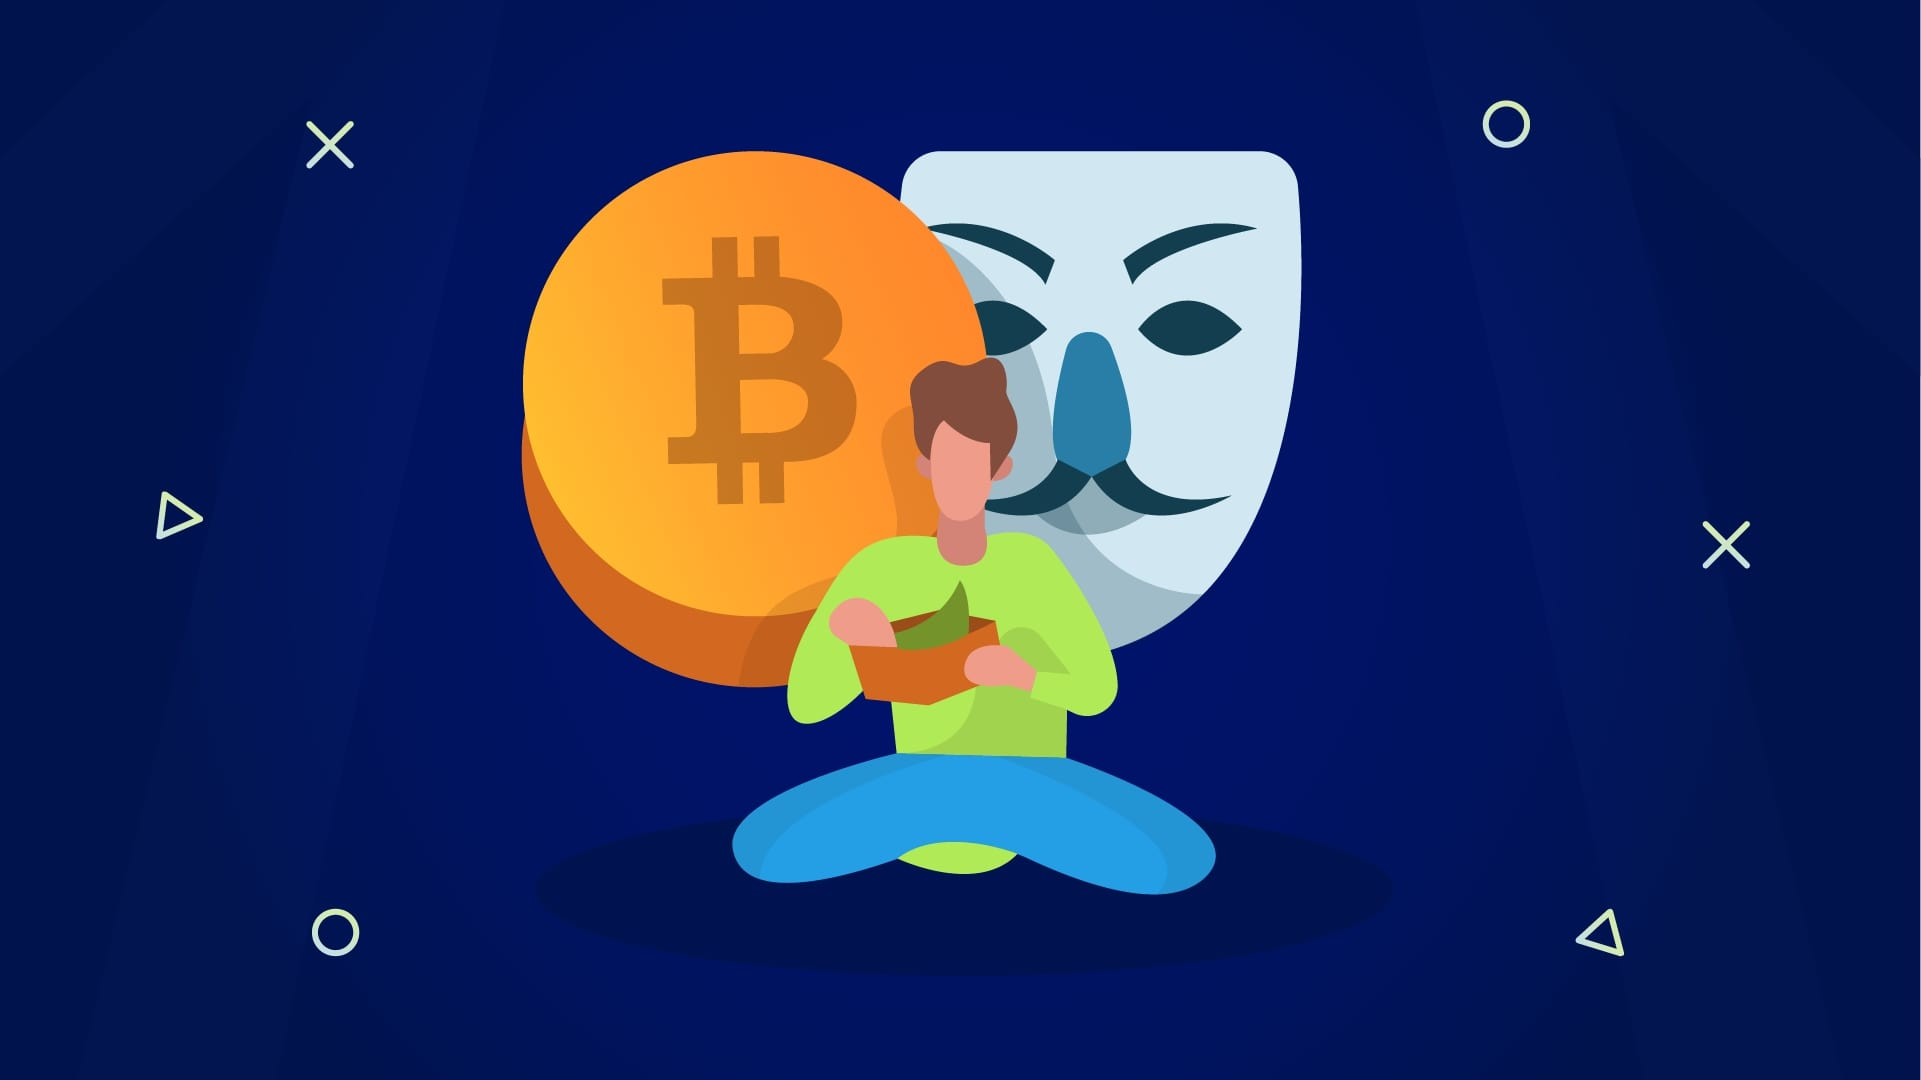 Is Bitcoin truly anonymous?